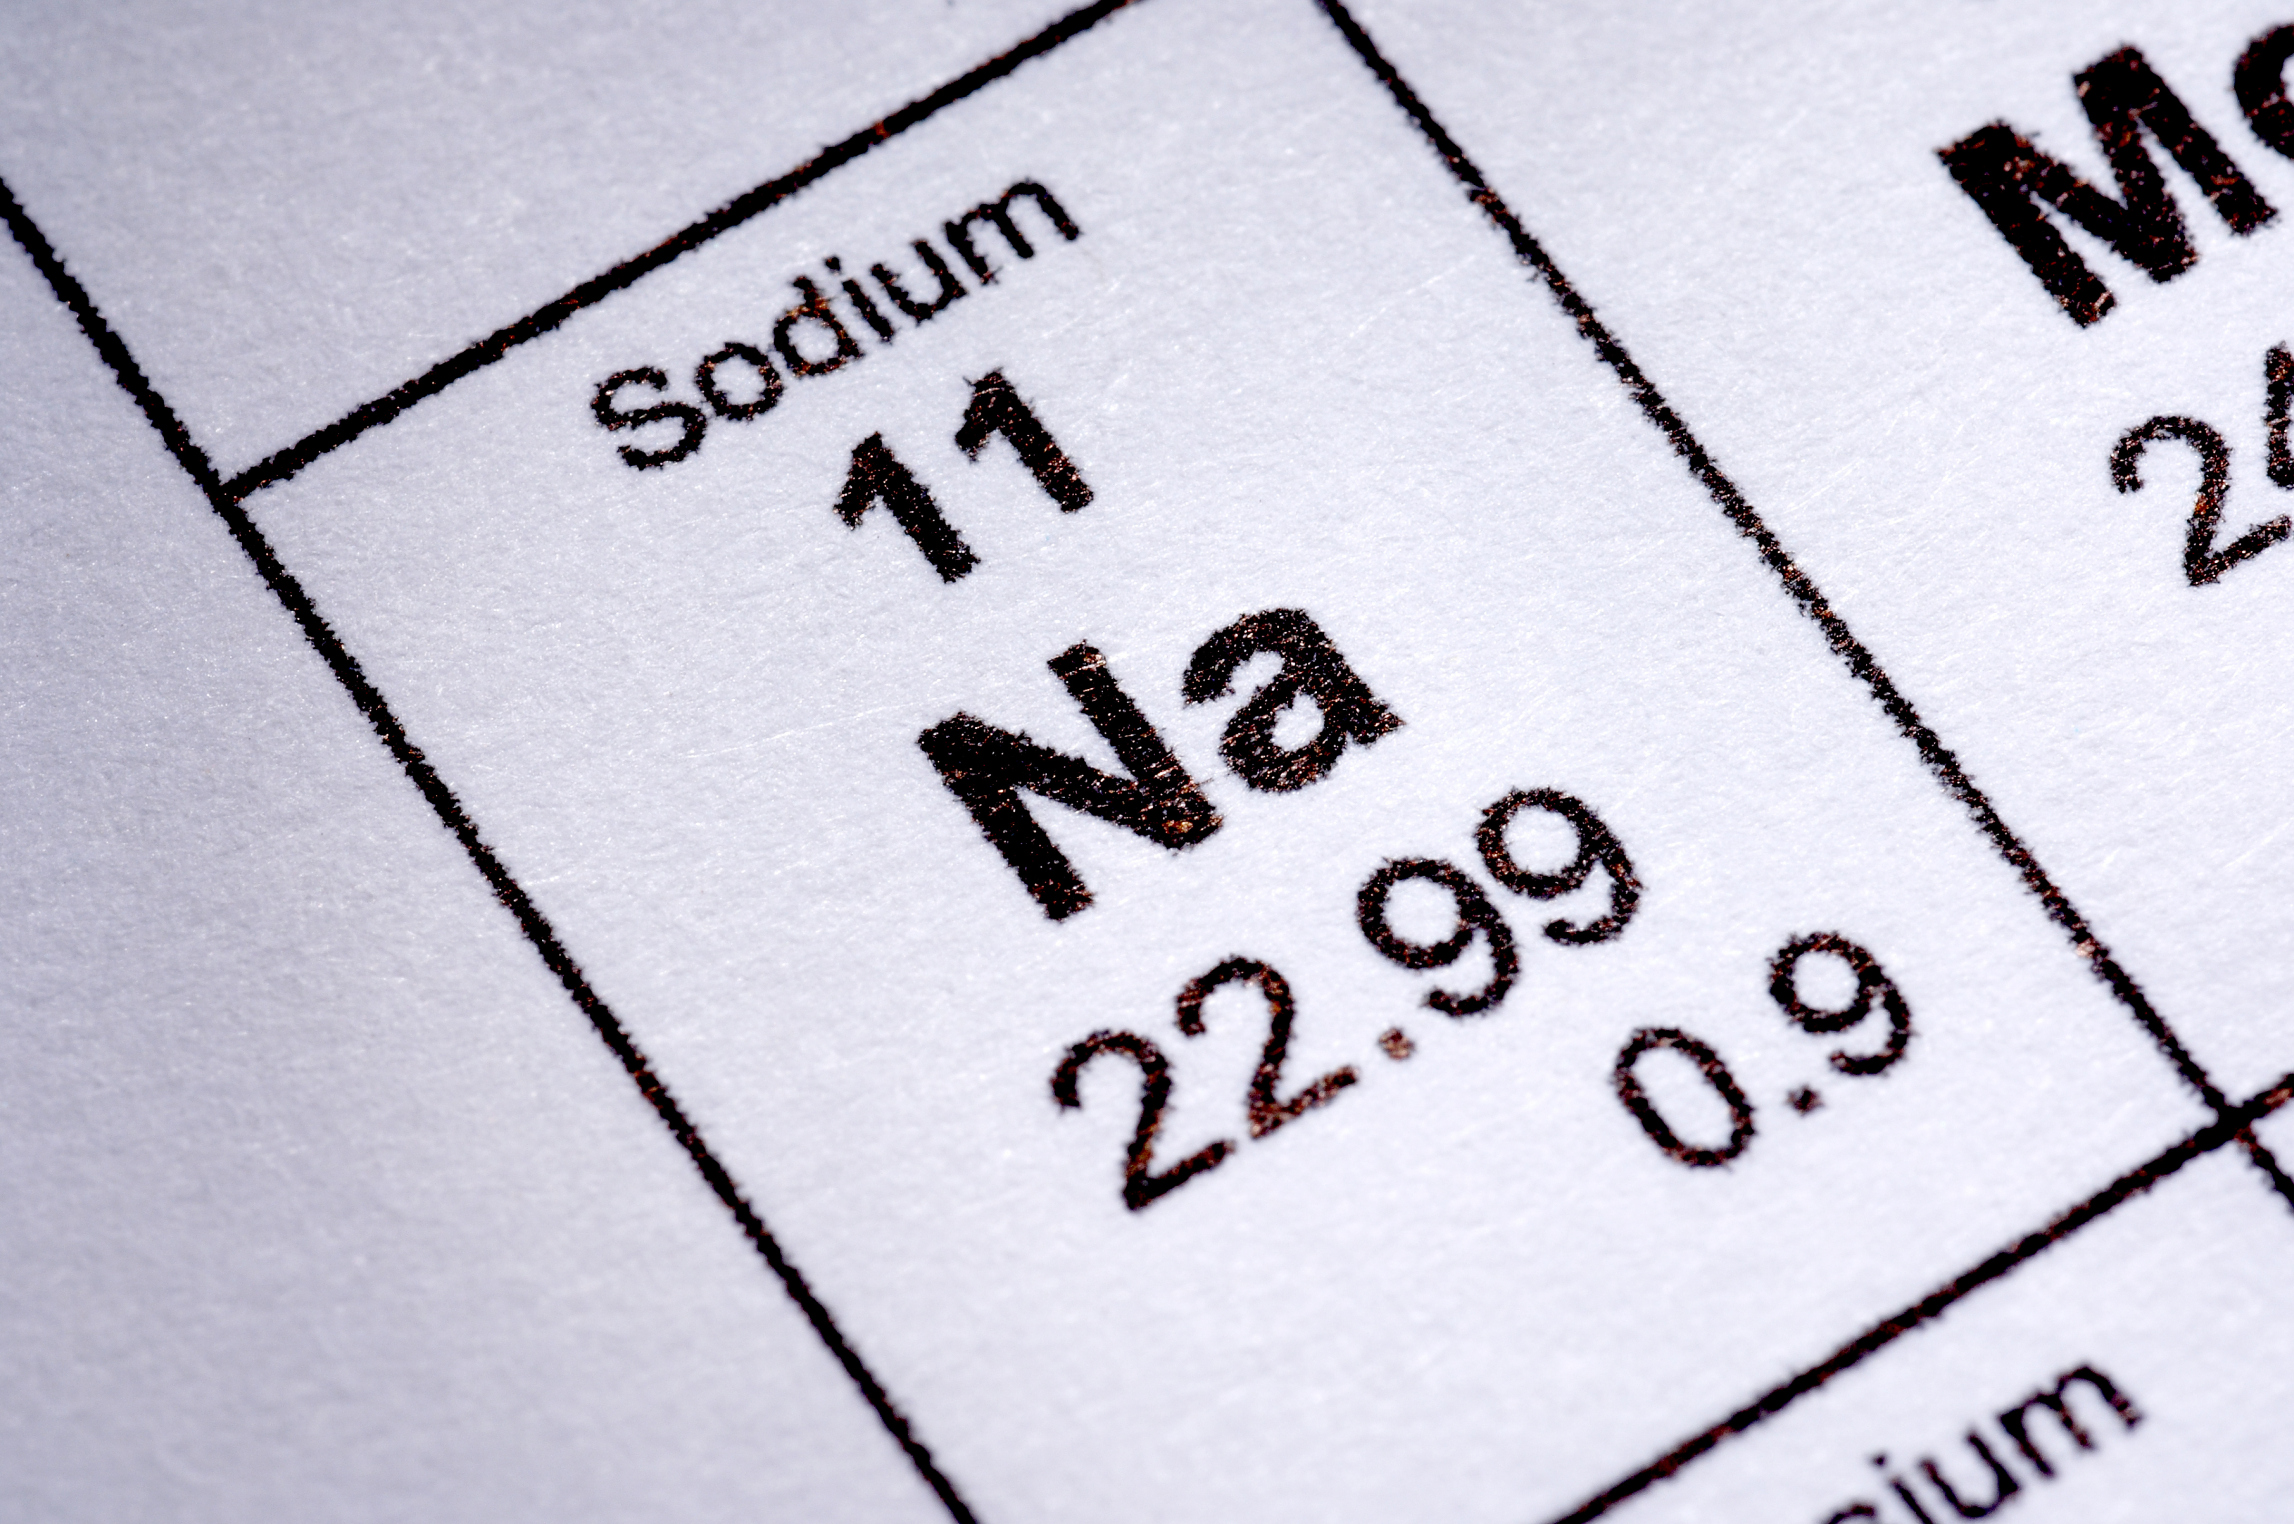 Your body needs sodium, just not too much.